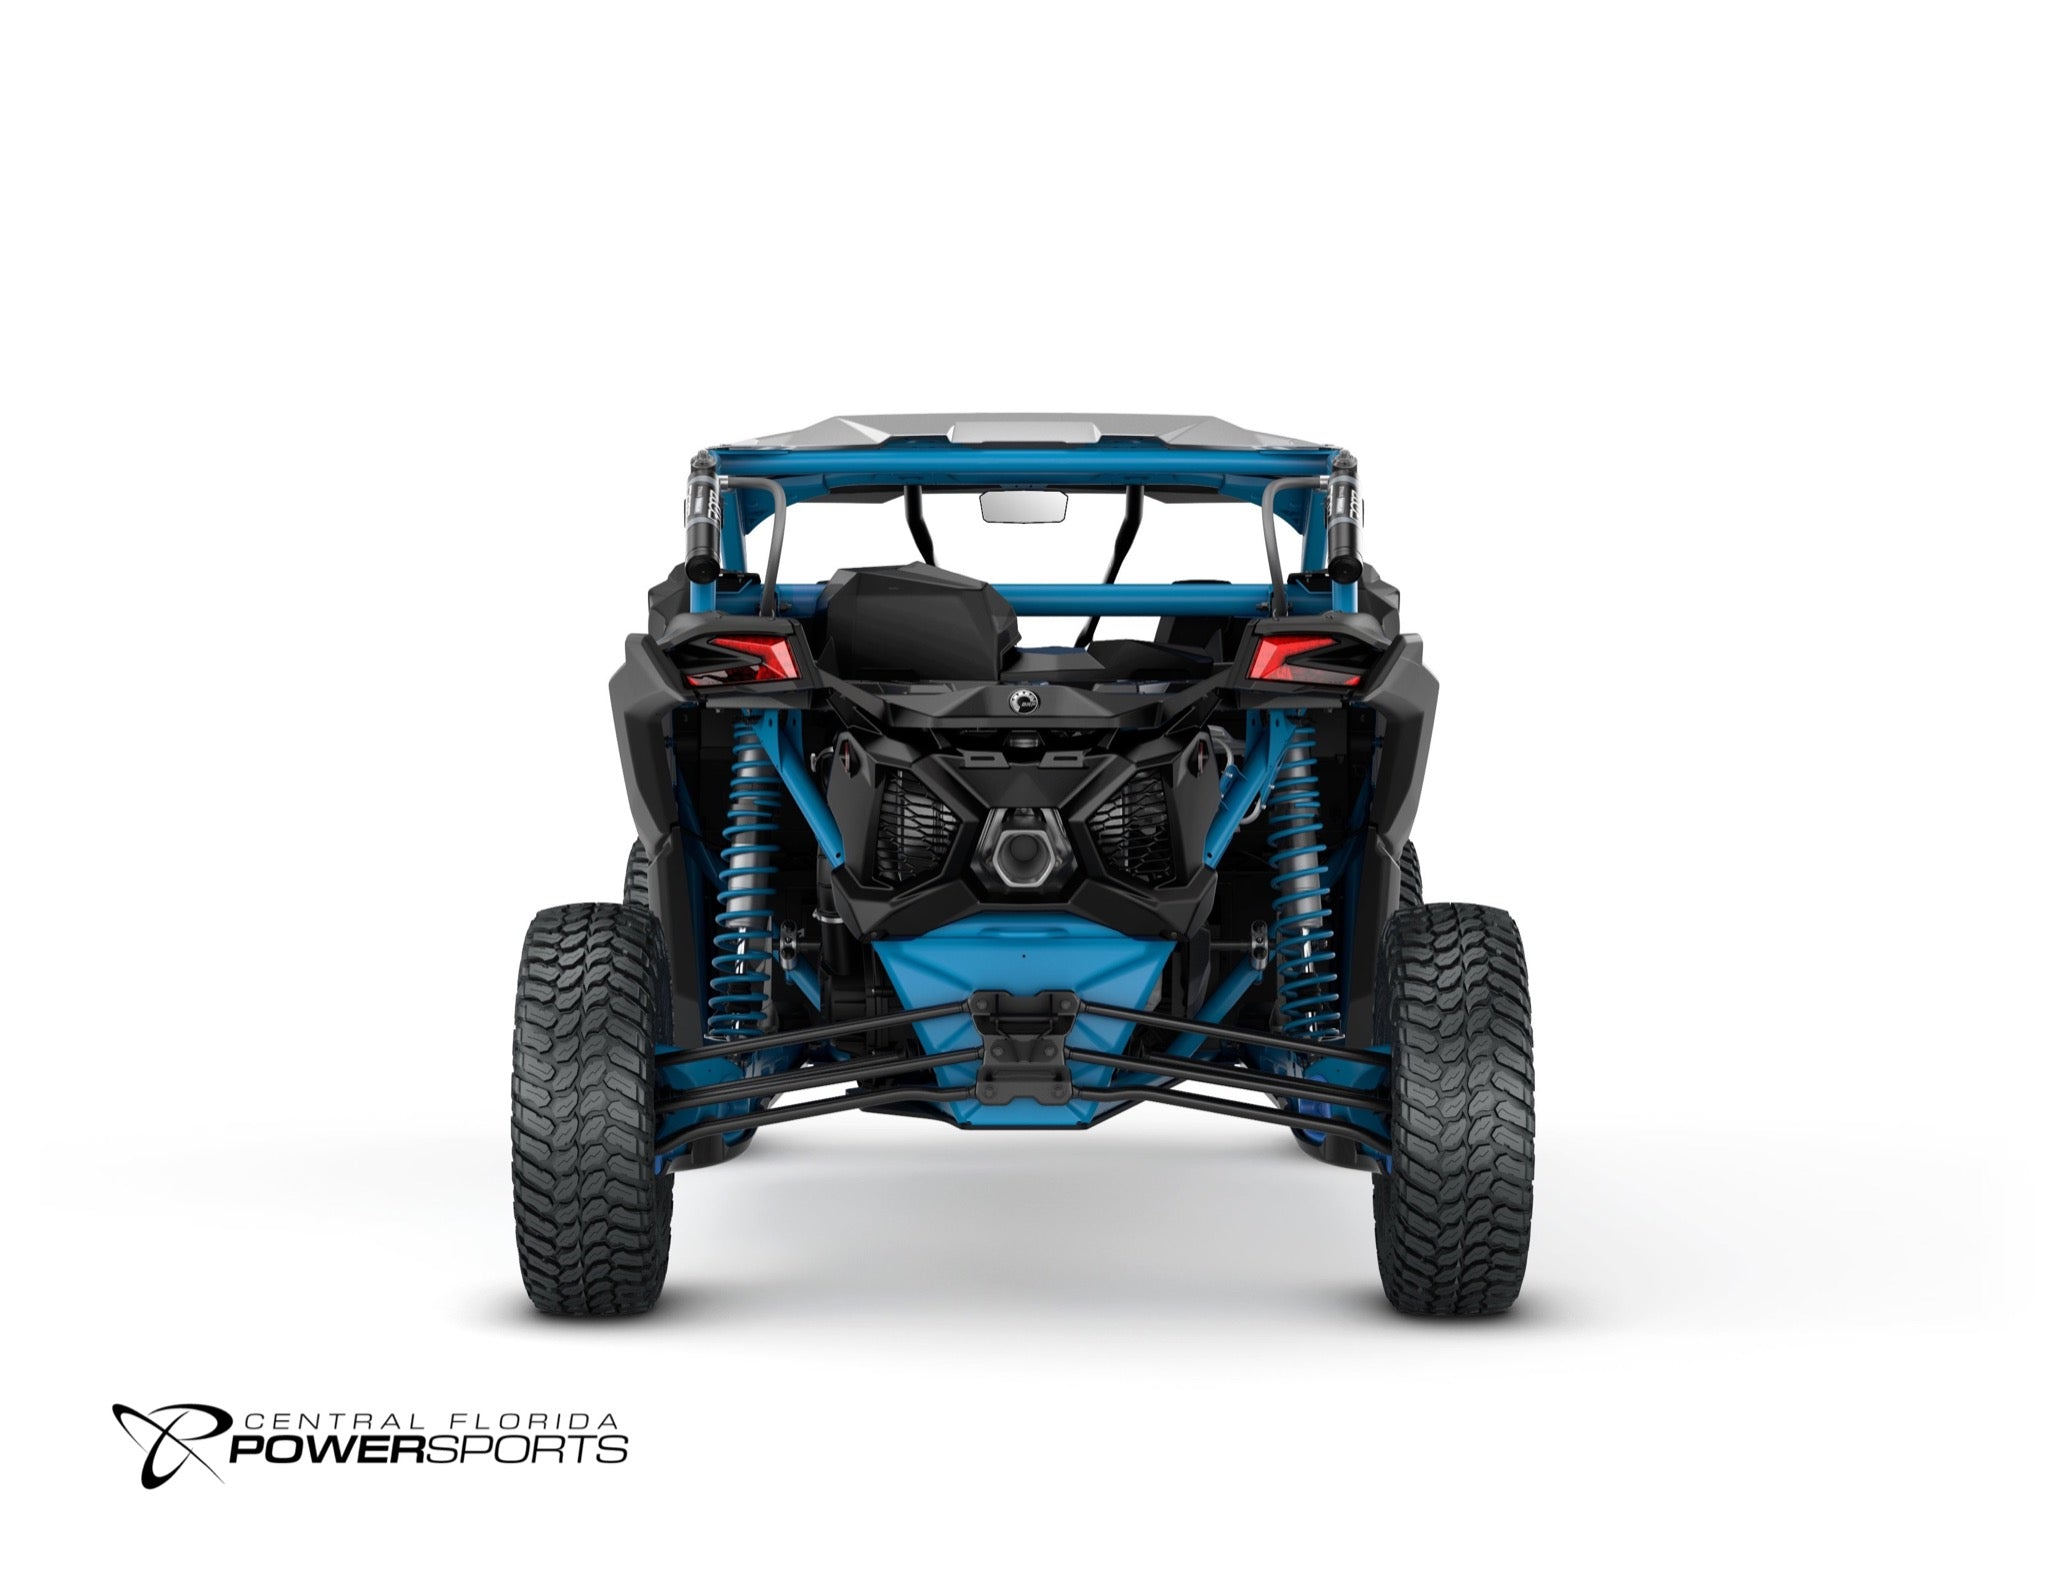 2018 canam maverick x3 x rc turbo r side by side sxs kissimmee dealer central florida powersports. Black Bedroom Furniture Sets. Home Design Ideas